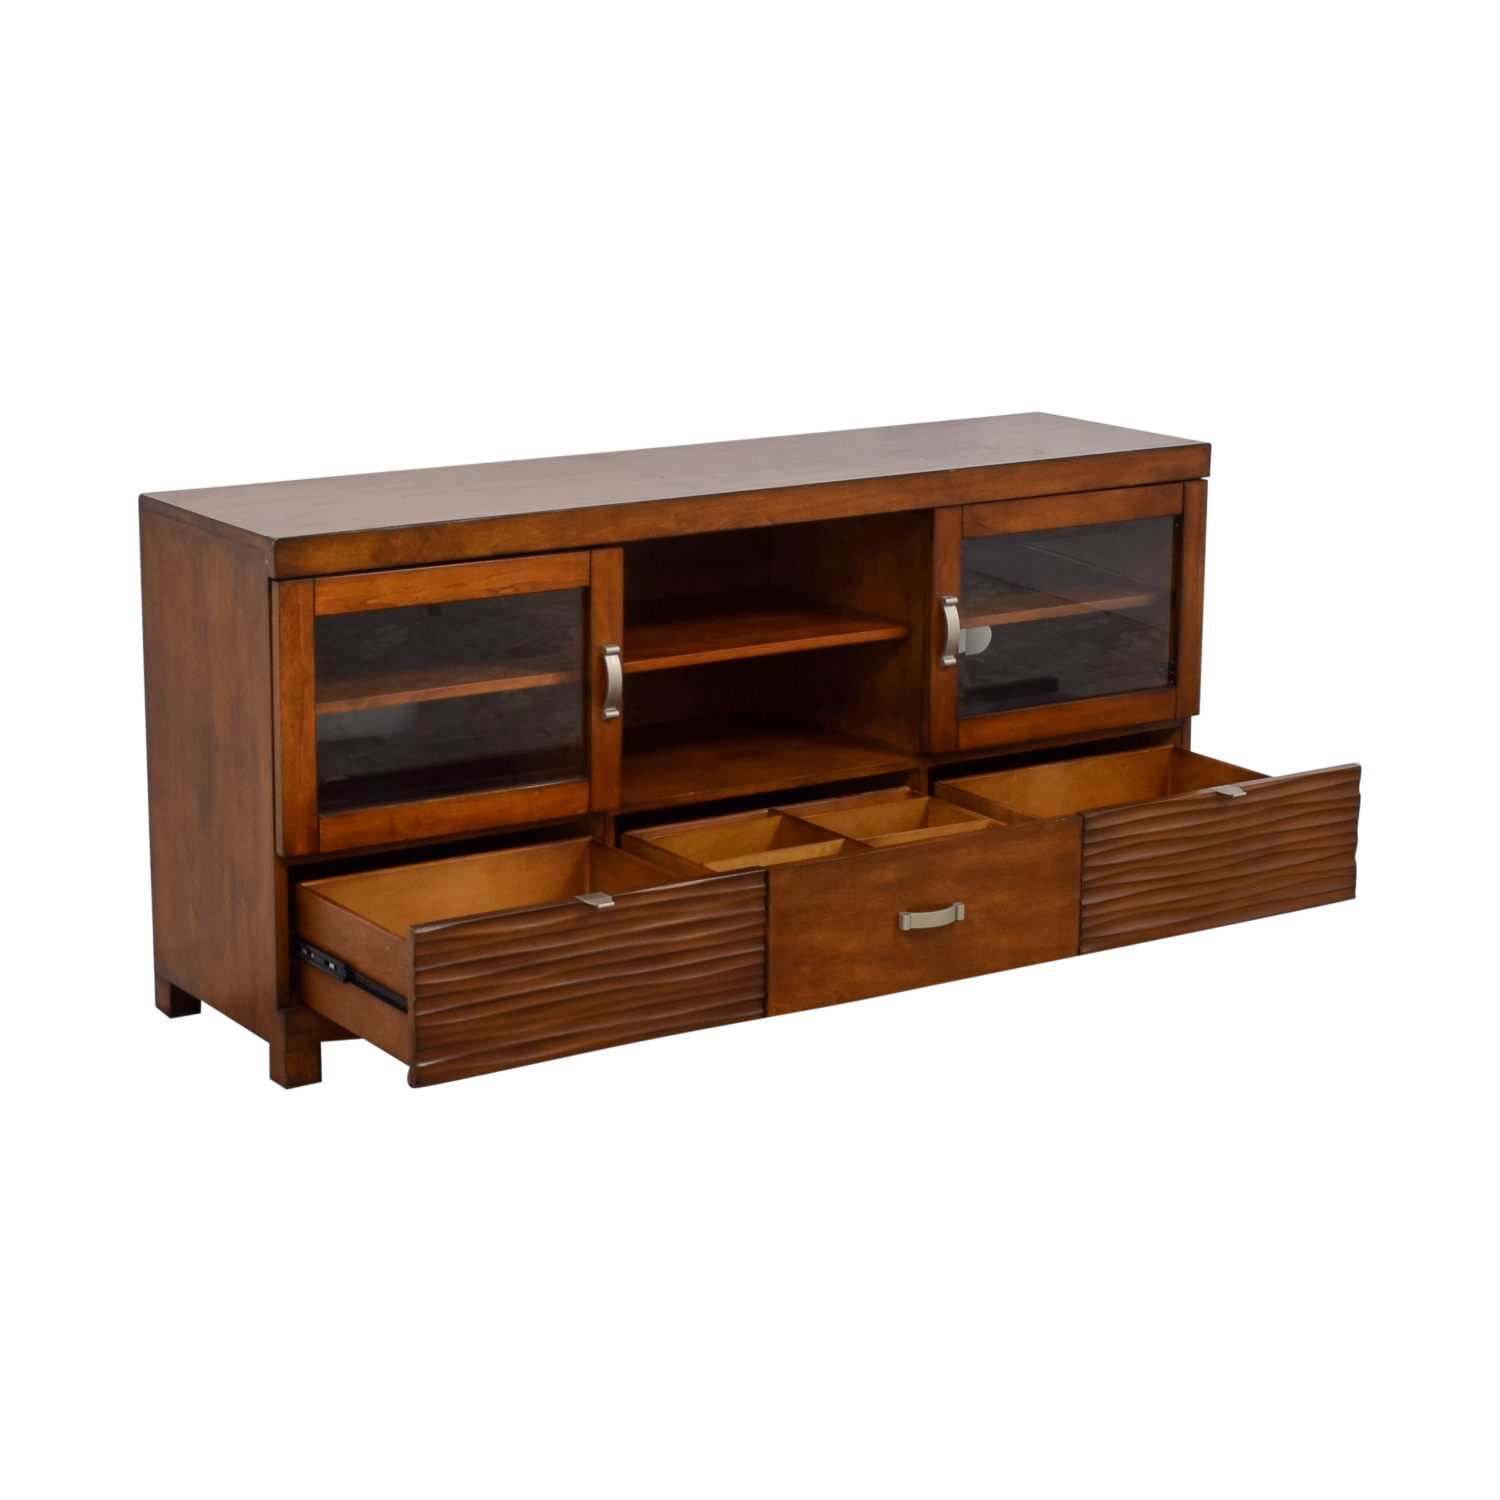 68 Off Bob S Furniture Bob S Furniture Tv Stand With Storage